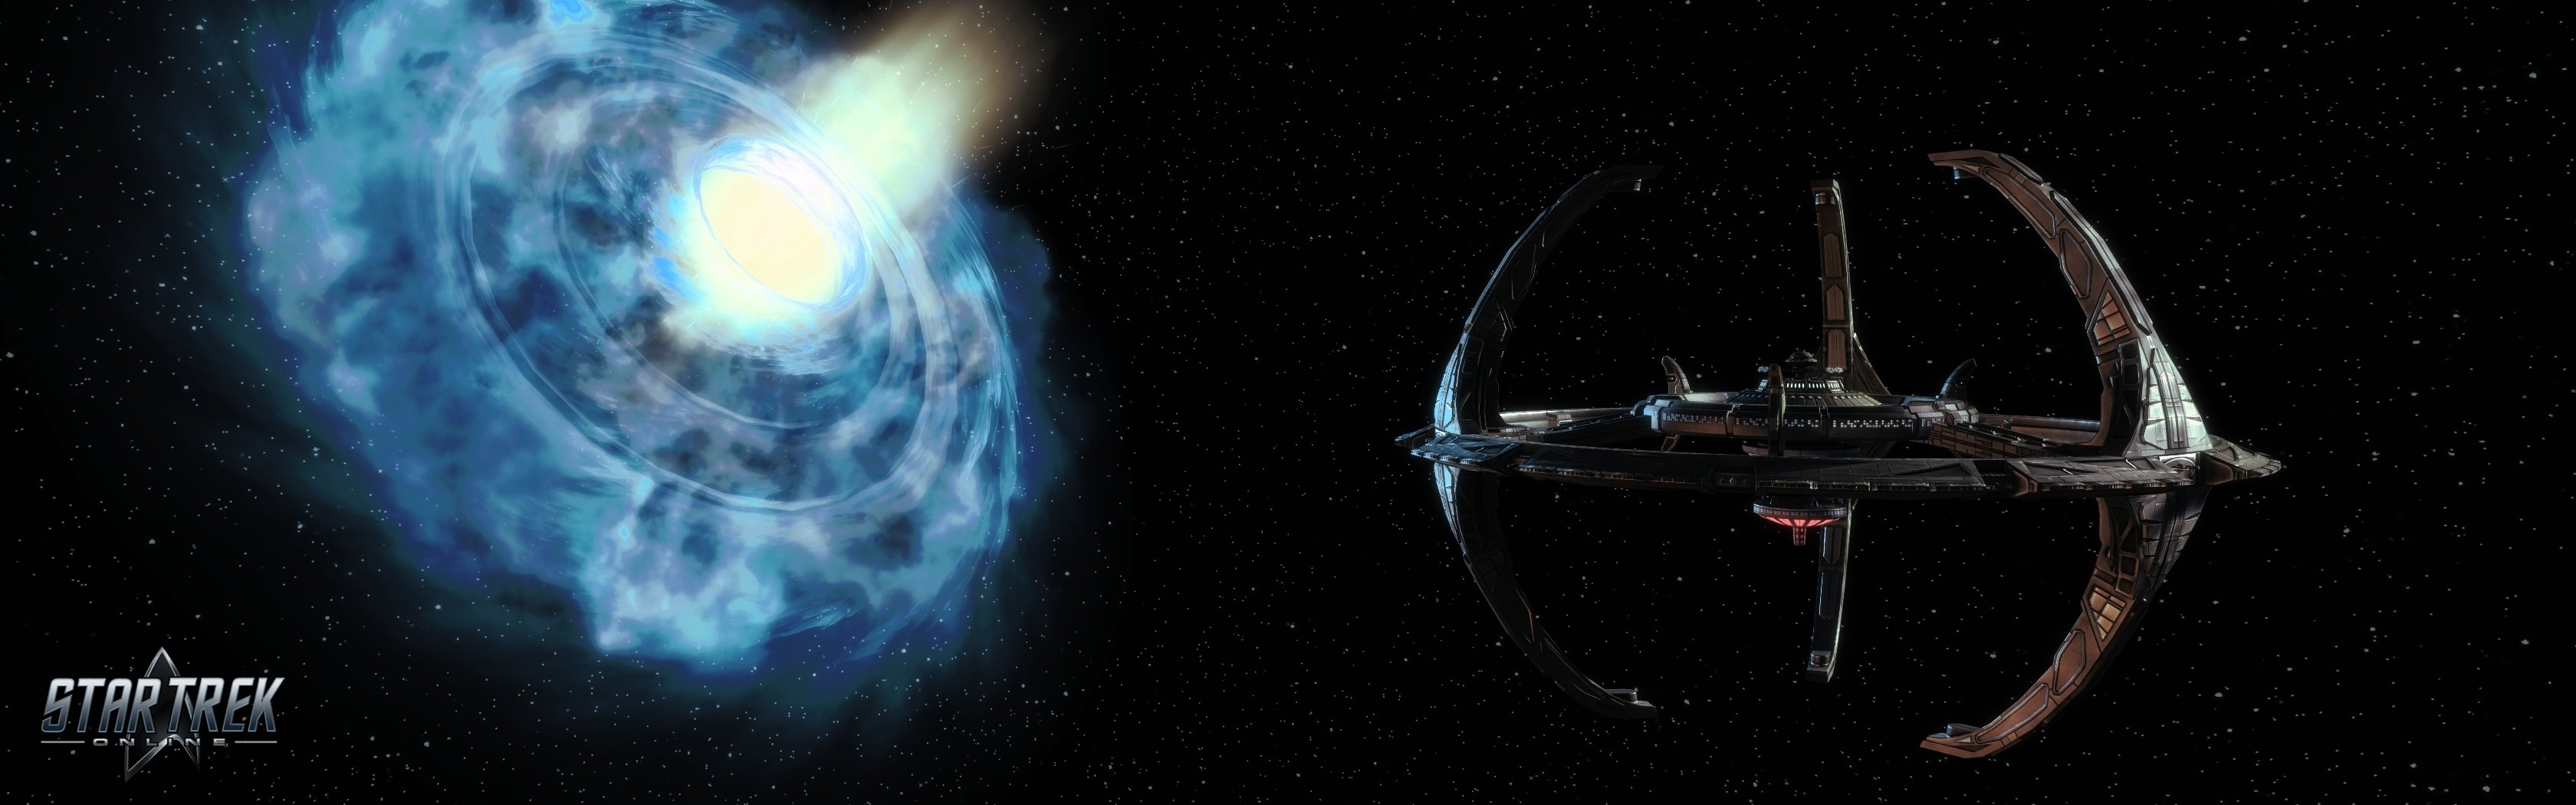 star trek dual screen wallpaper - wallpapersafari